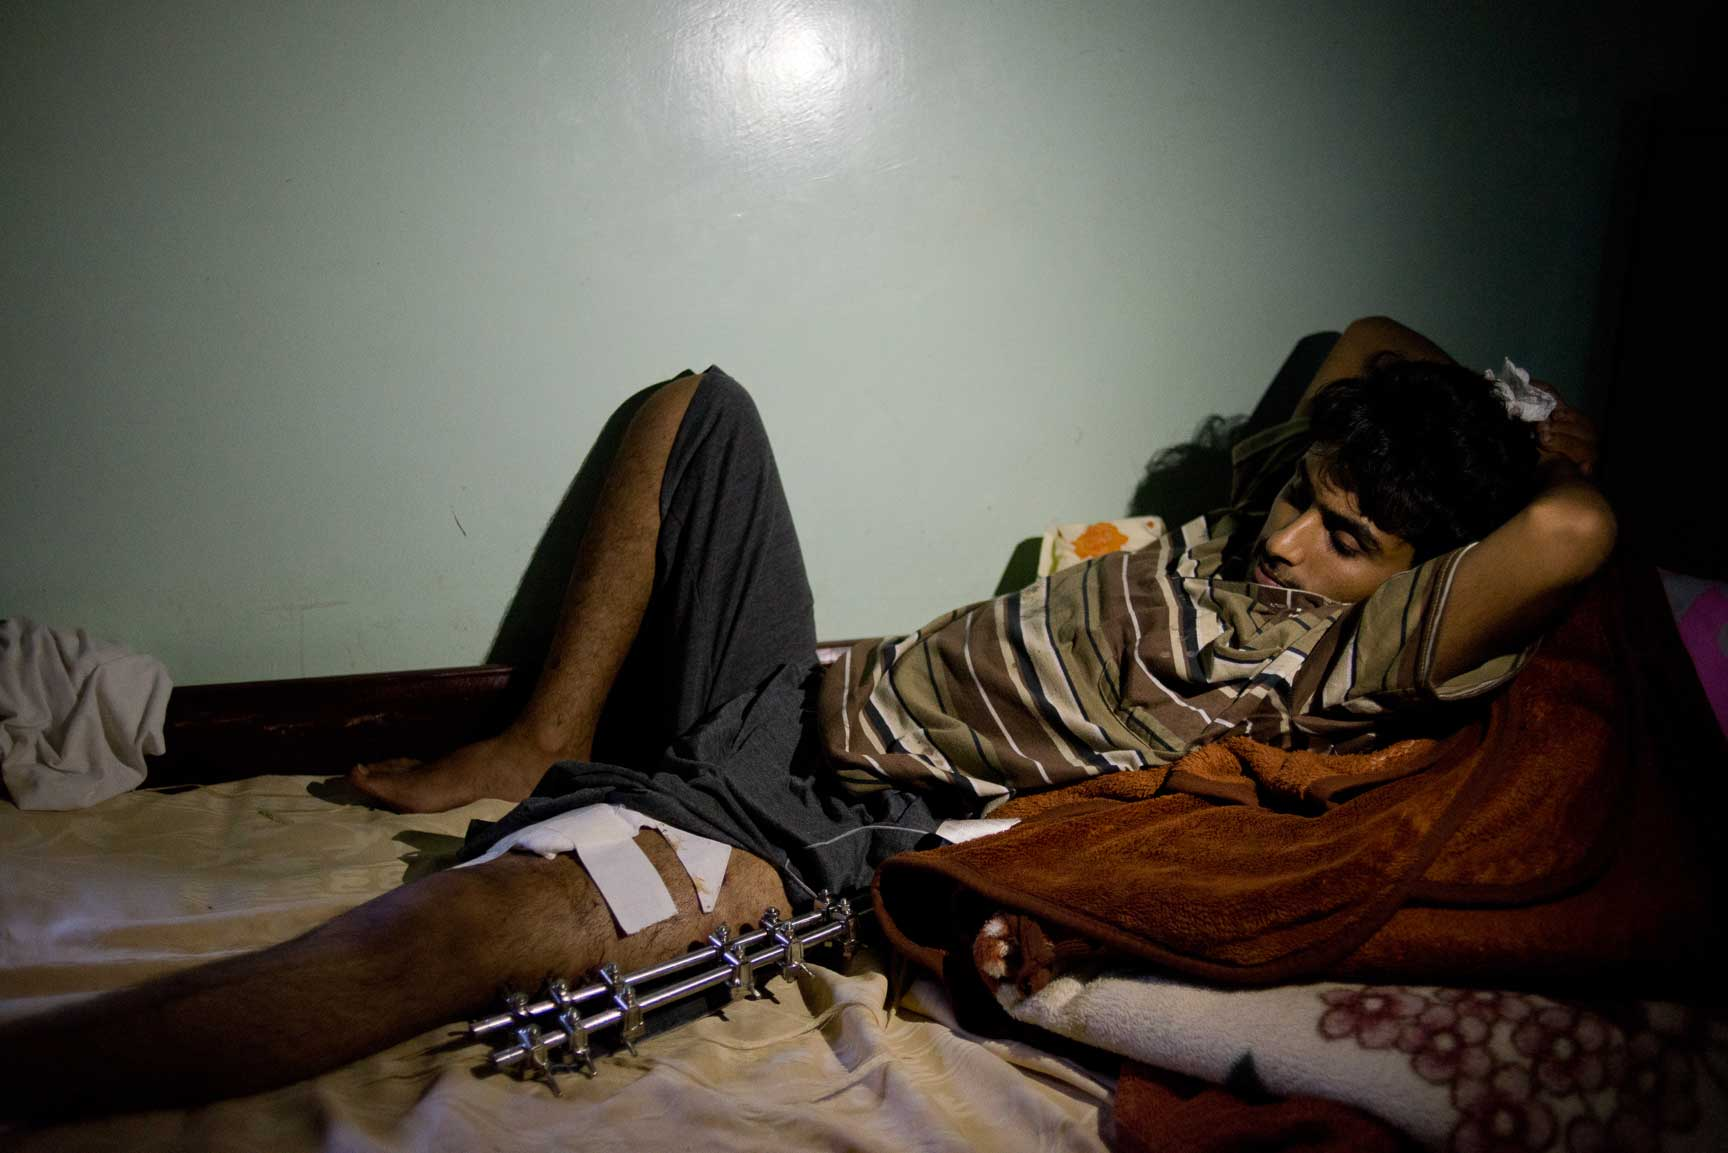 A young Yemeni man lays recovering from his injuries in Amran Hospital on Tuesday, July 7, 2015 in Amran, Yemen.